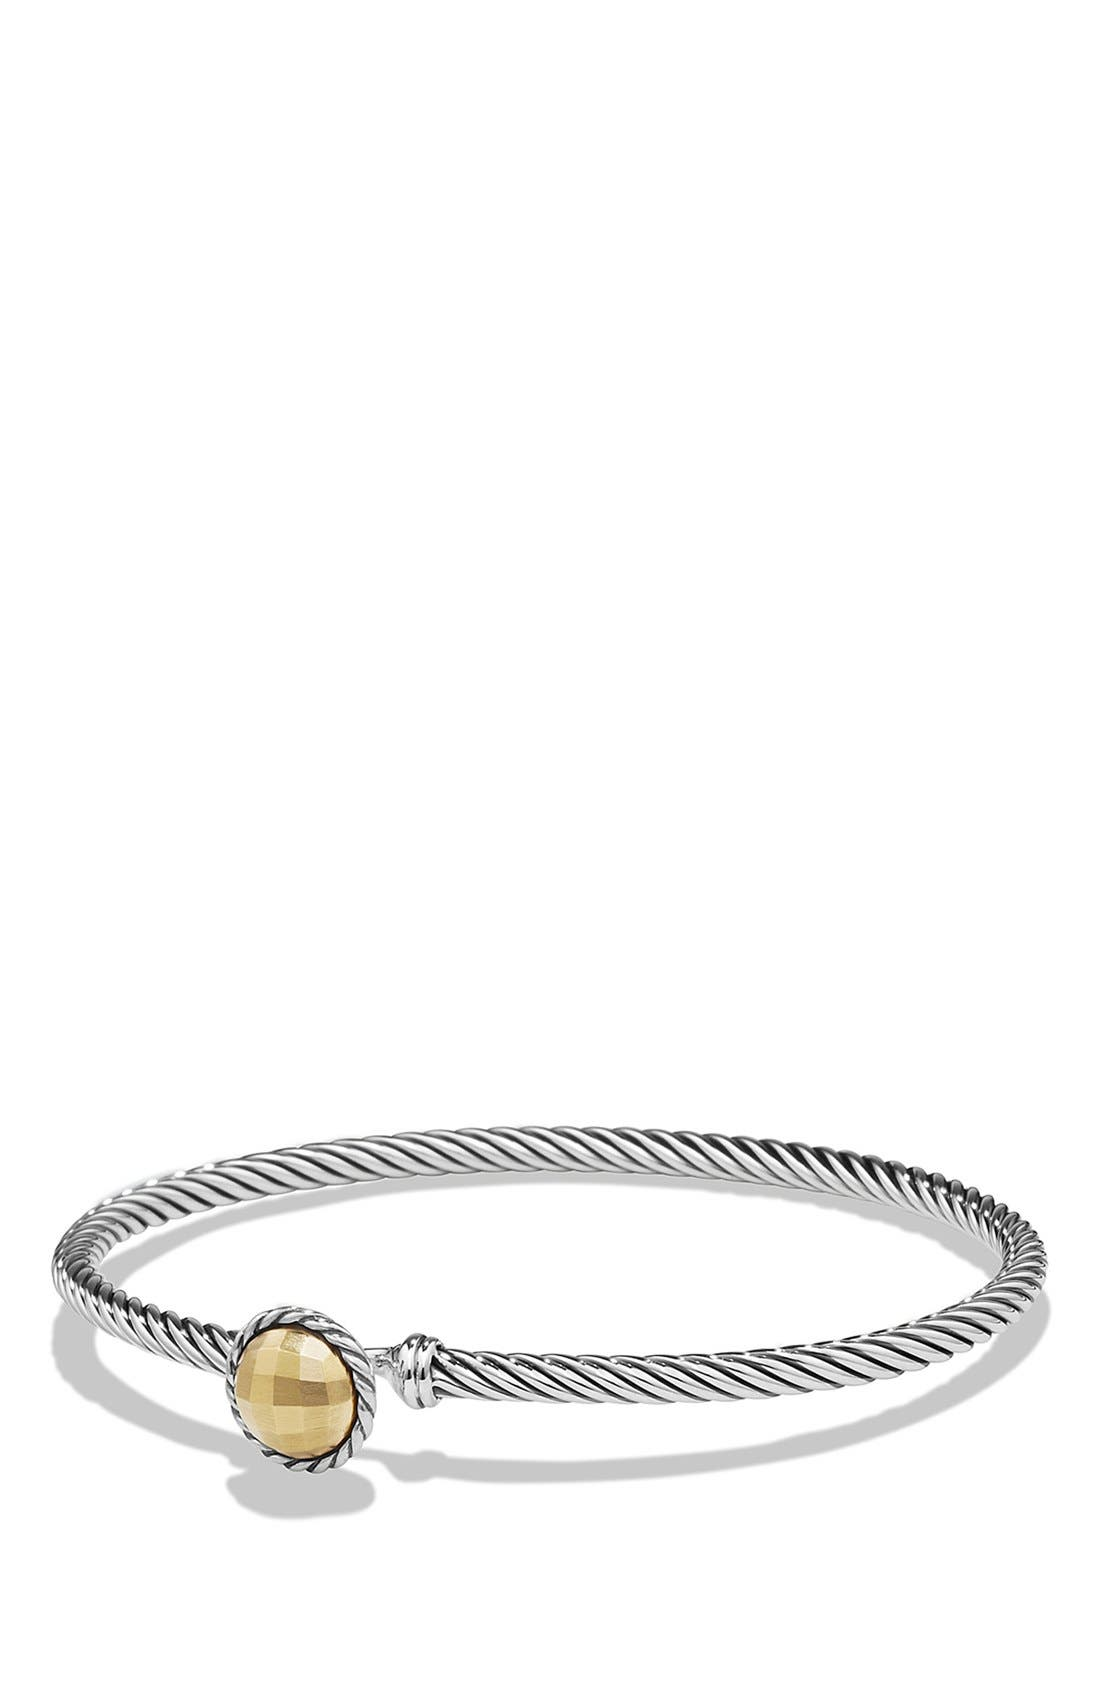 David Yurman 'Châtelaine' Bracelet with Gold Dome and 18K Gold